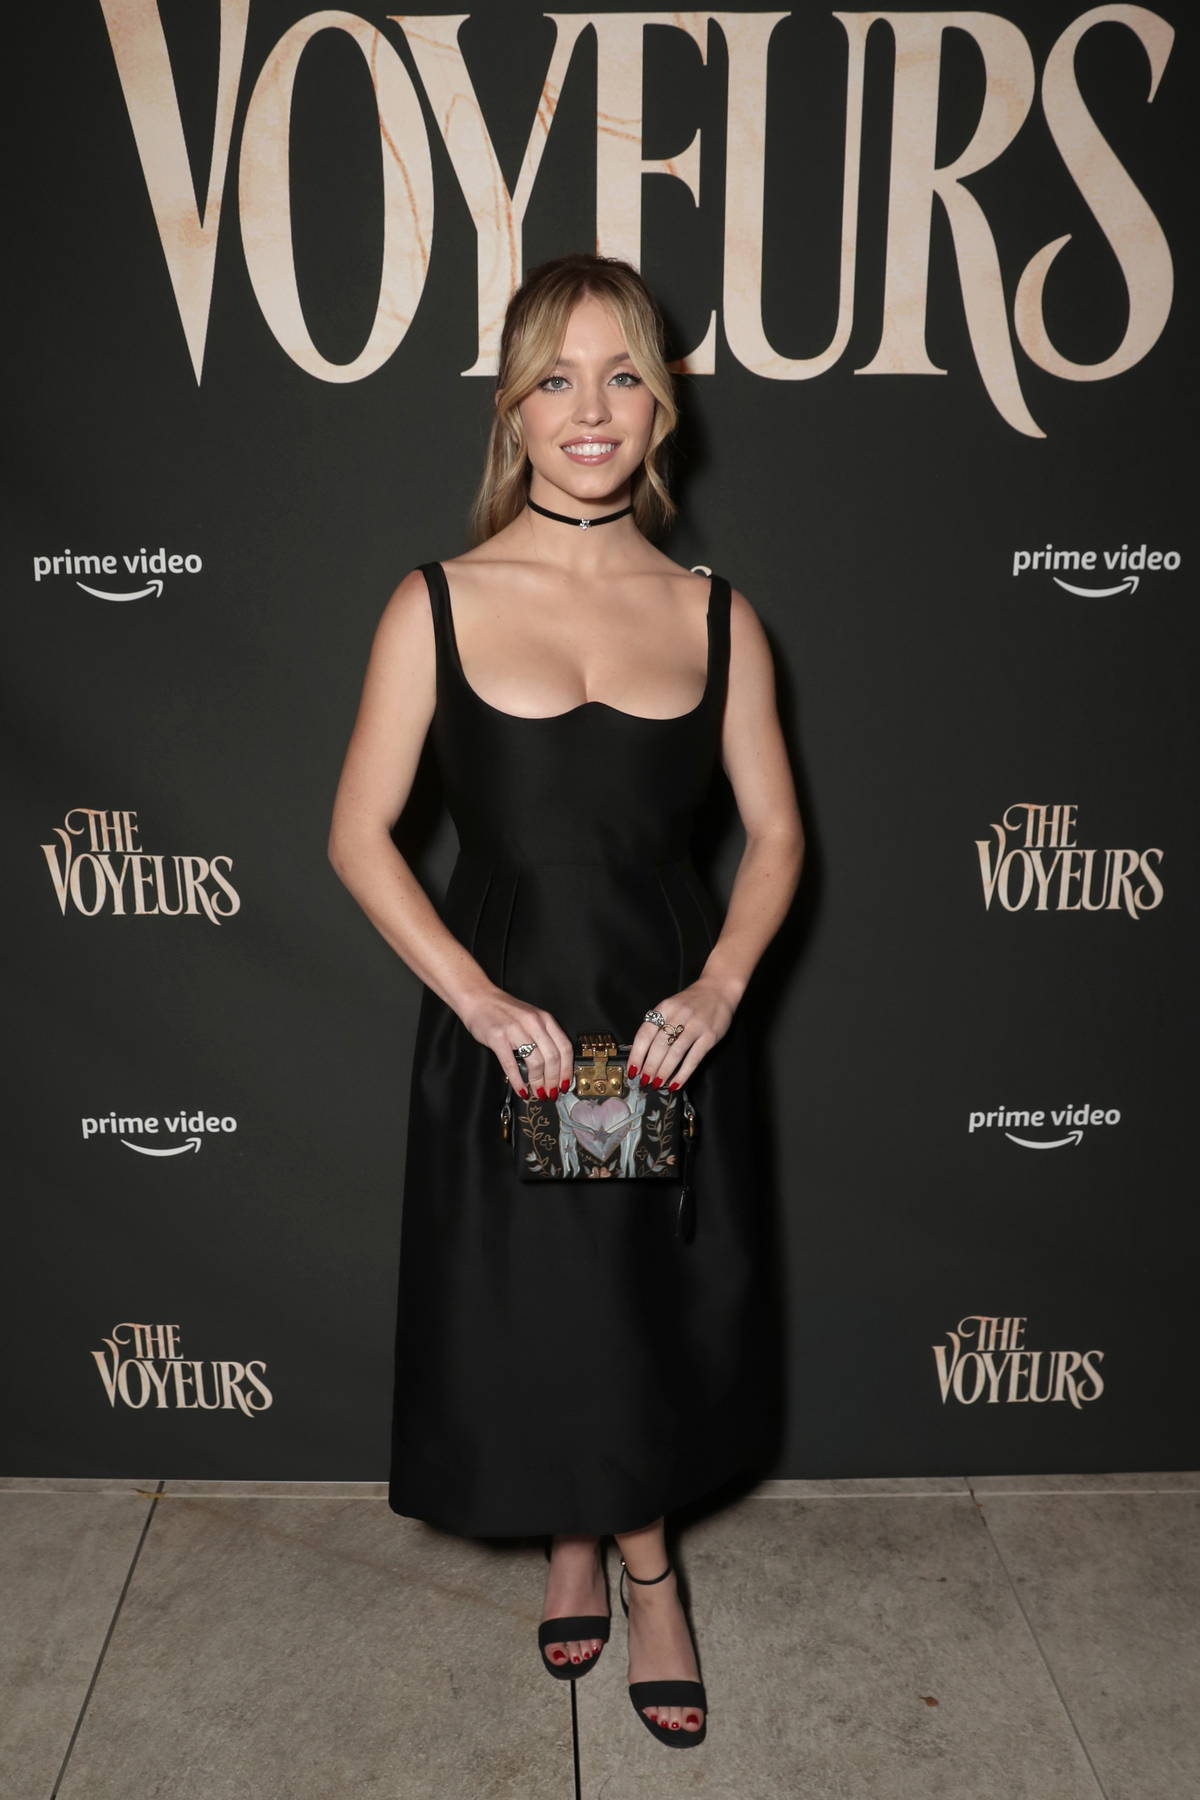 Sydney Sweeney attends the premiere of 'The Voyeurs' in Los Angeles